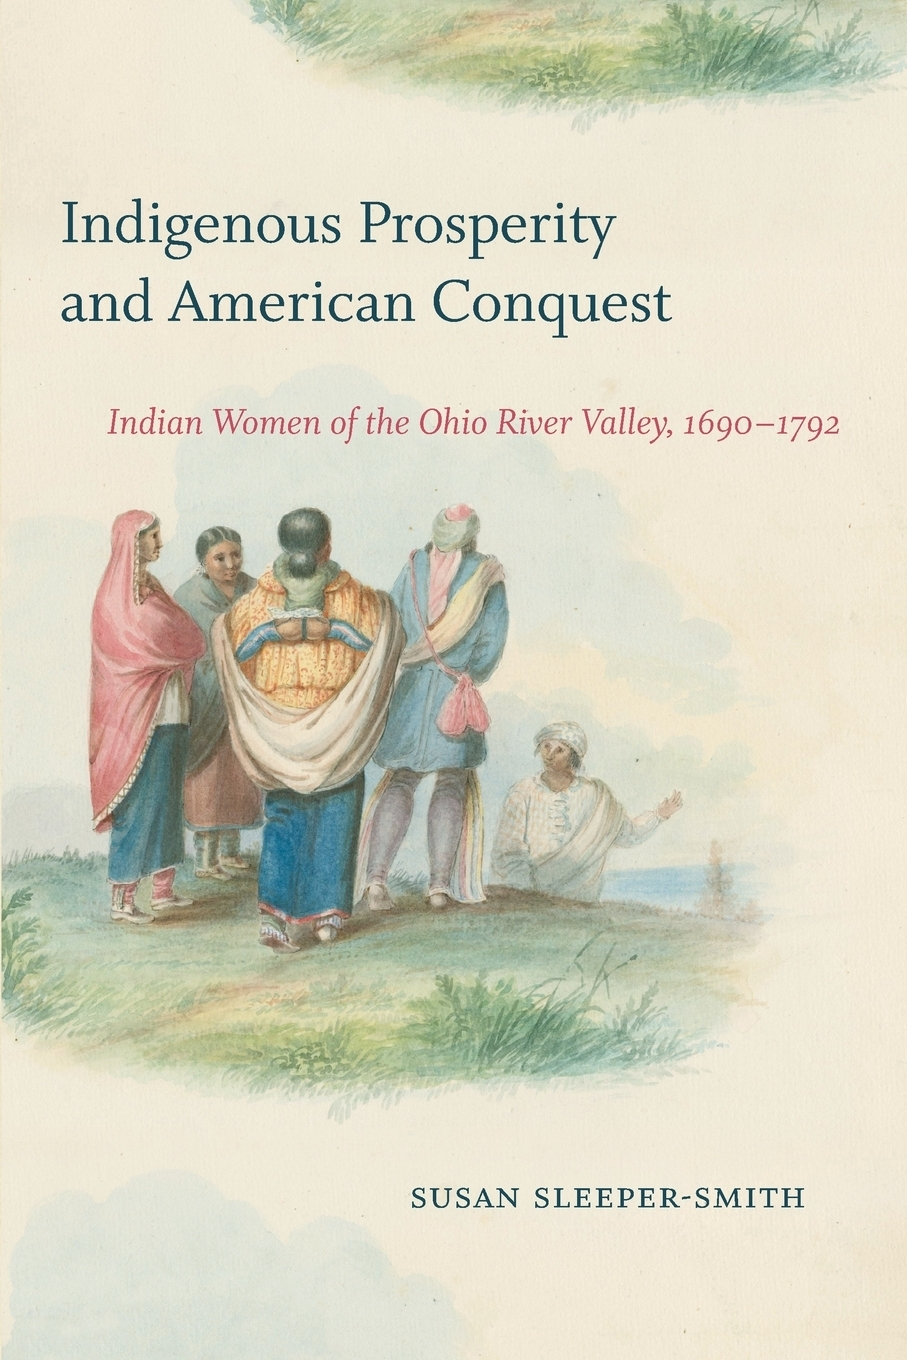 Susan Sleeper-Smith. Indigenous Prosperity and American Conquest. Indian Women of the Ohio River Valley, 1690-1792